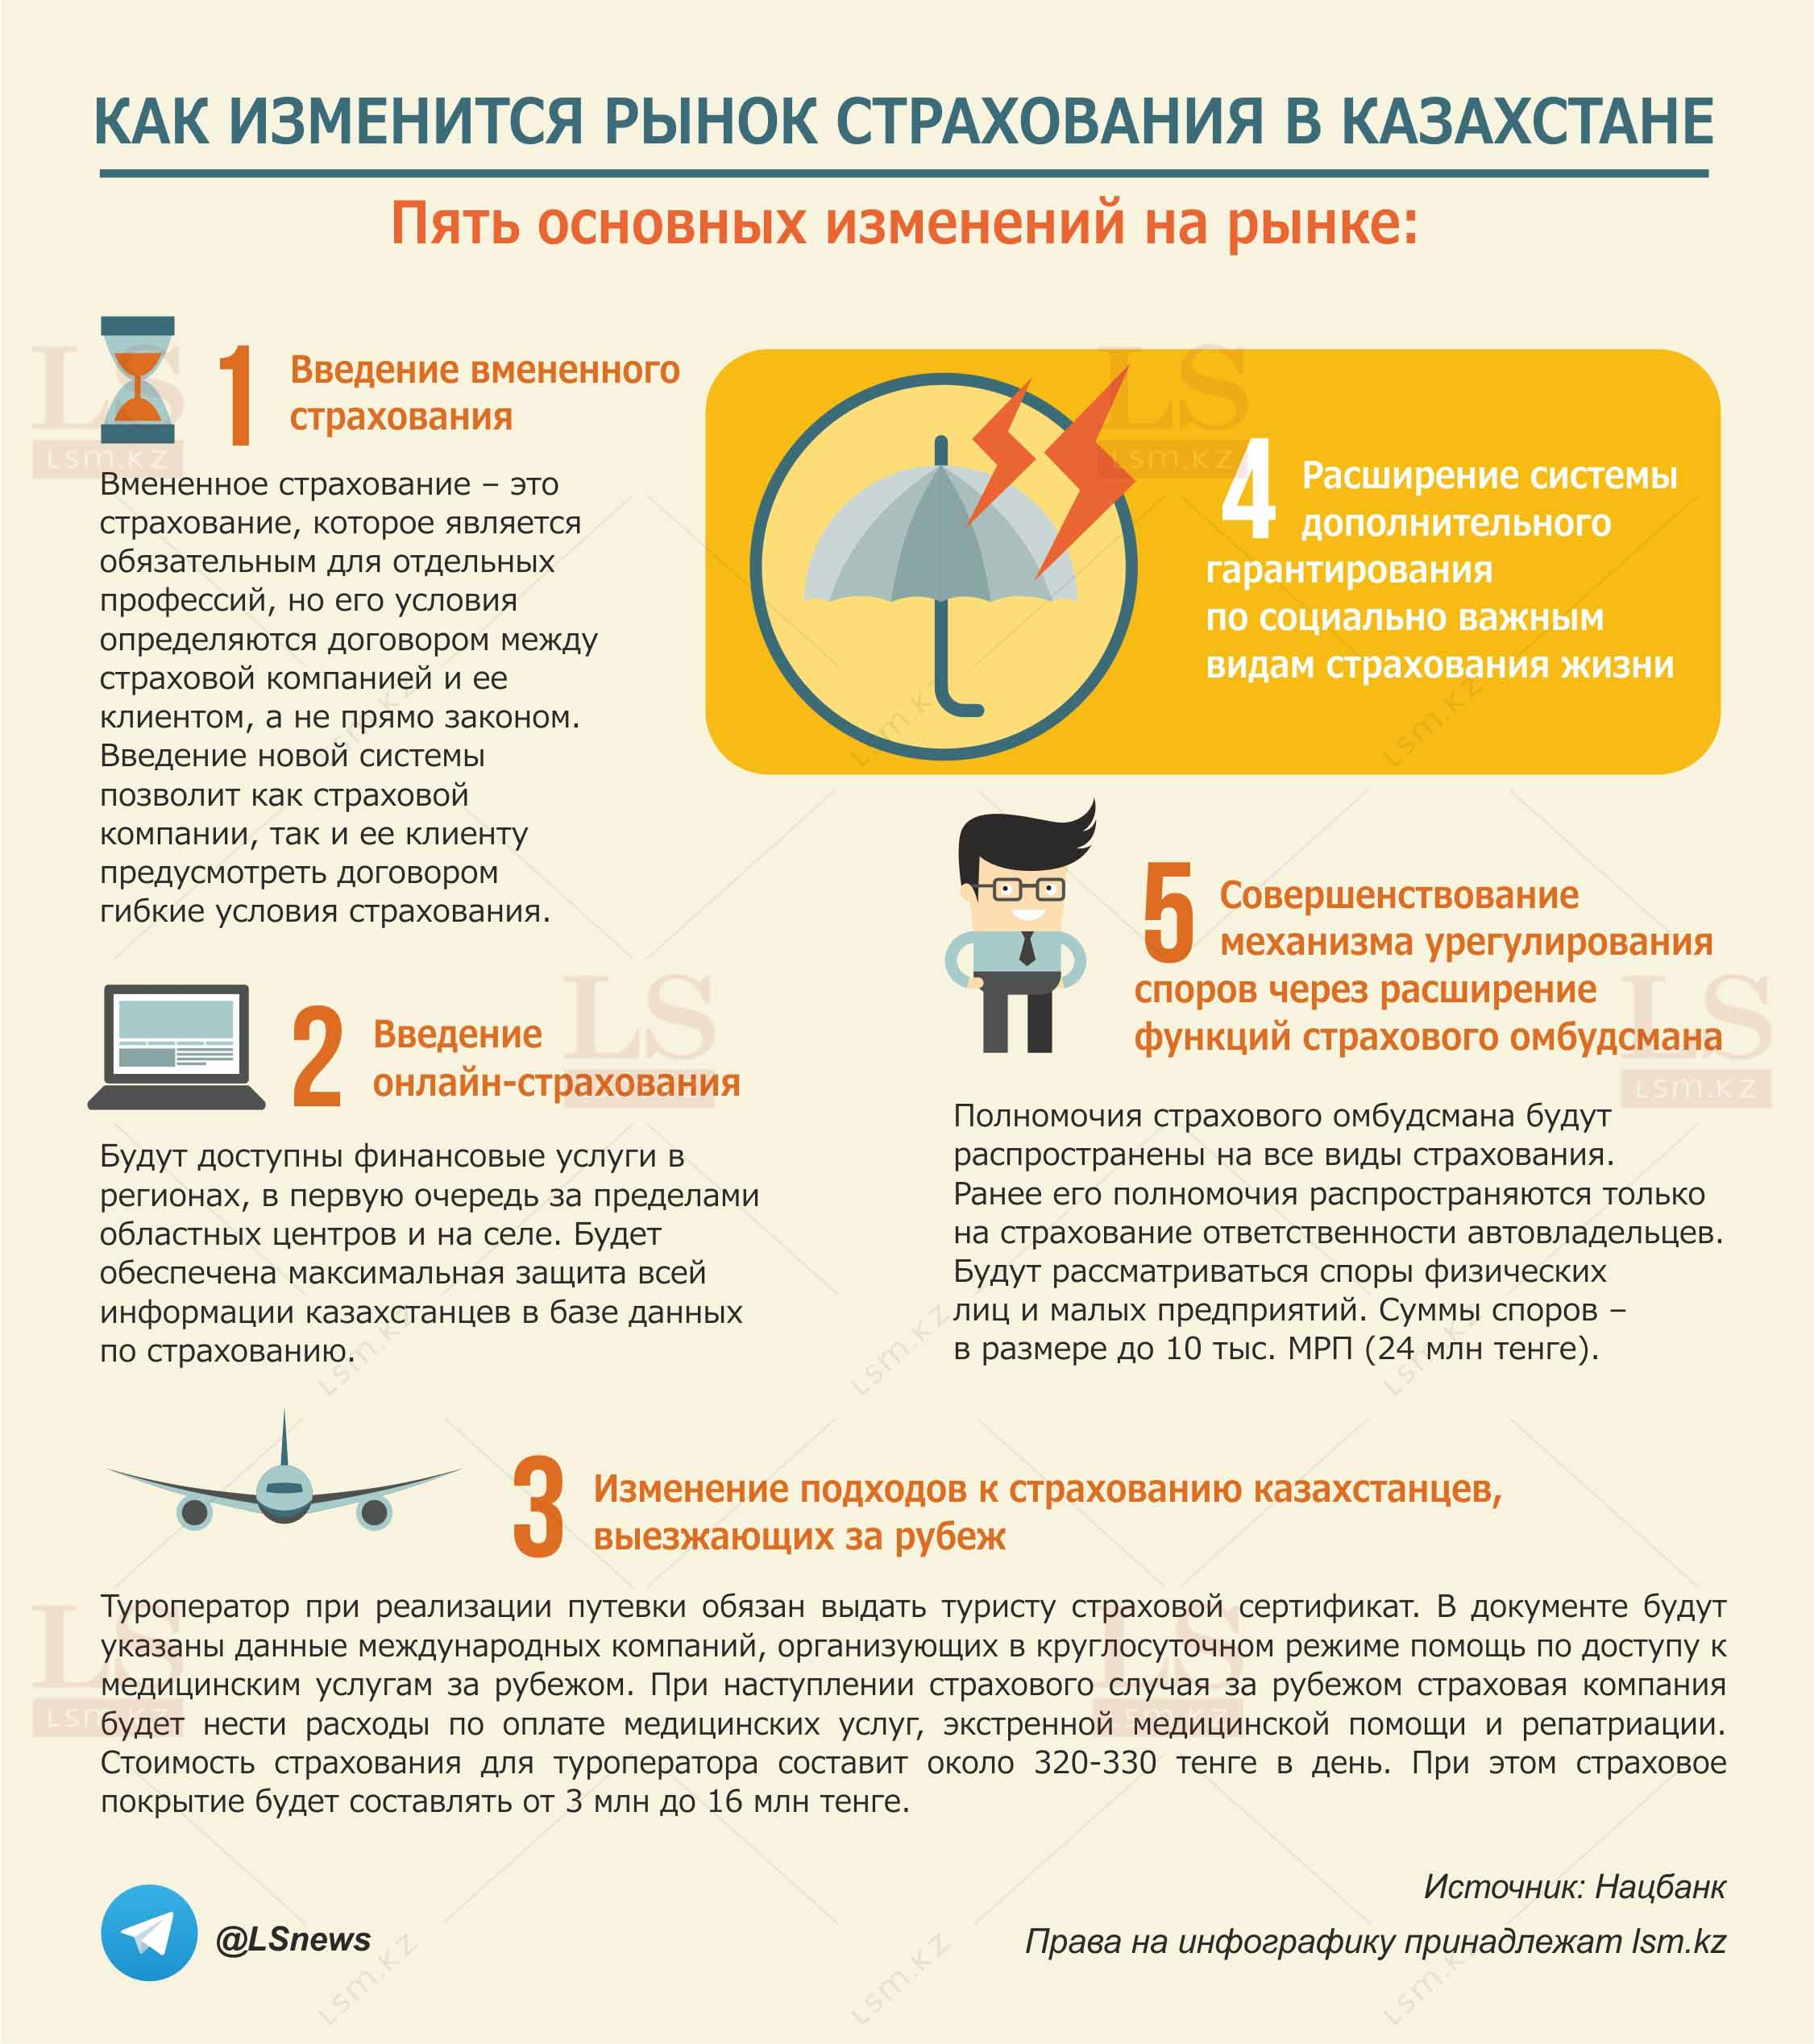 How will insurance change in Kazakhstan? Information graphics